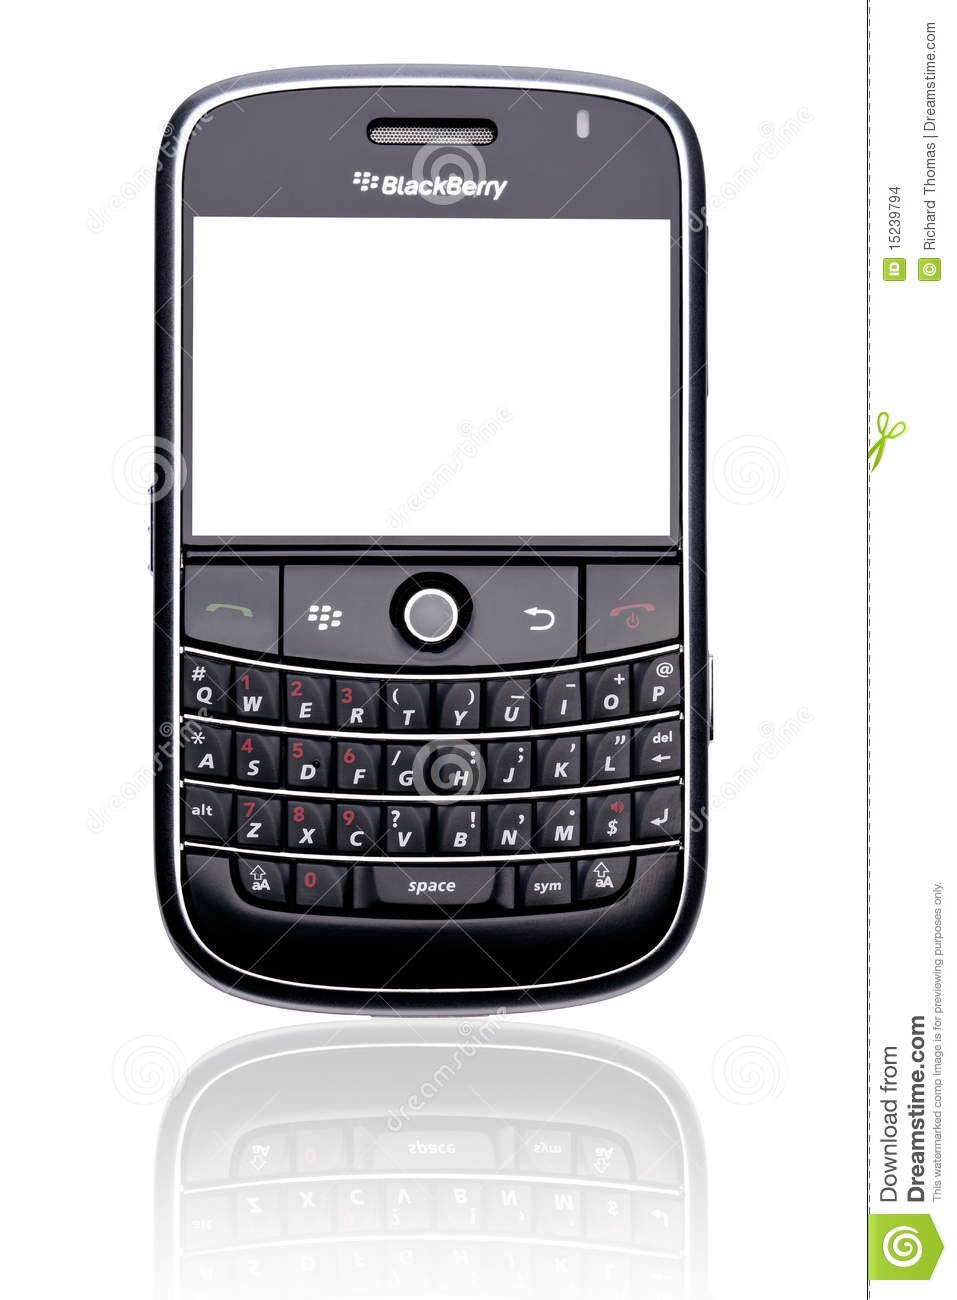 clipart for blackberry phone - photo #7